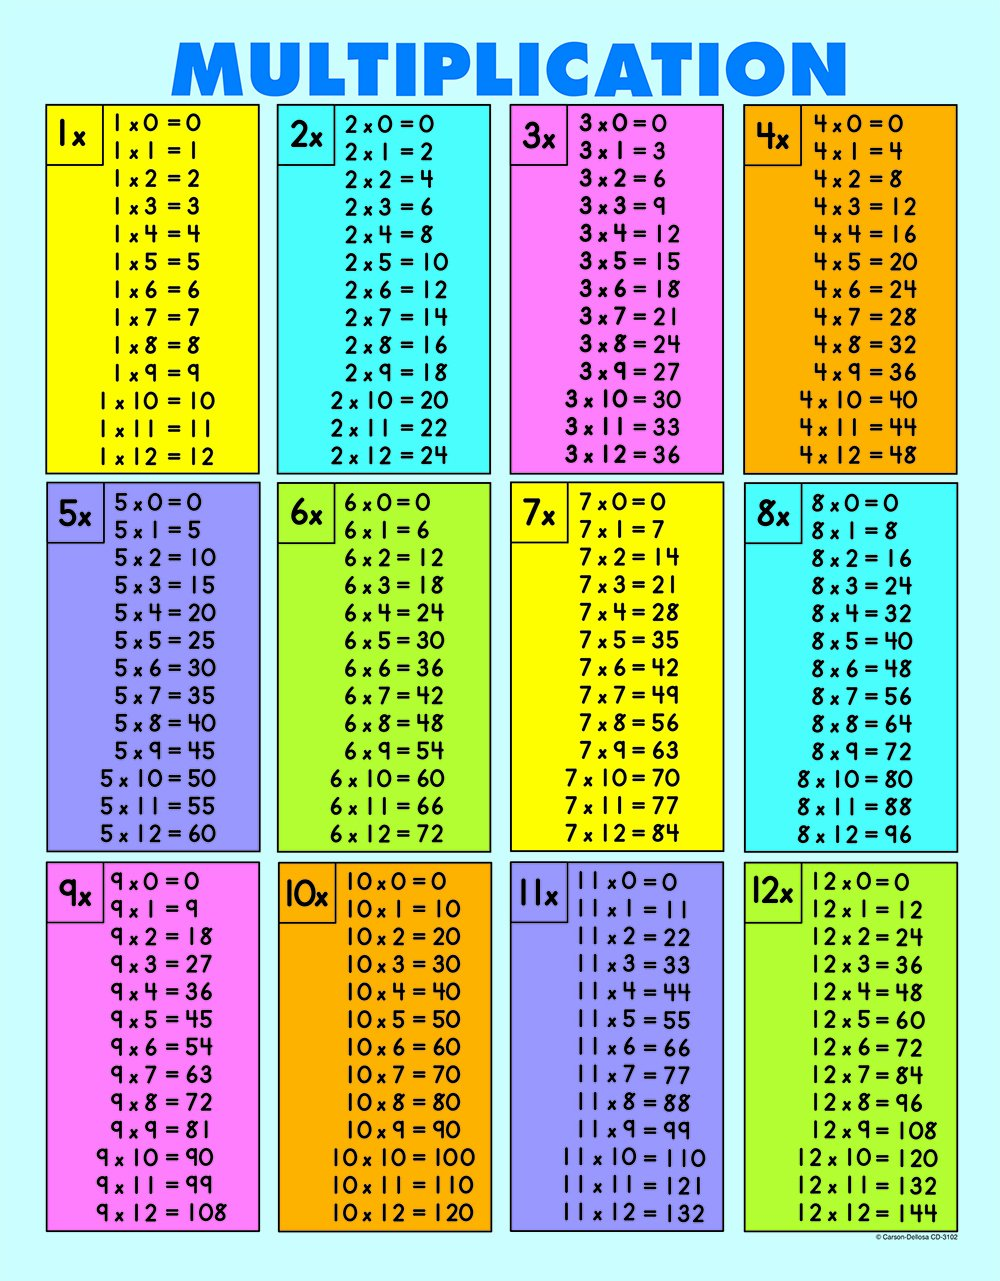 Multiplication facts through 12 popflyboys for Table de multiplication de 7 8 9